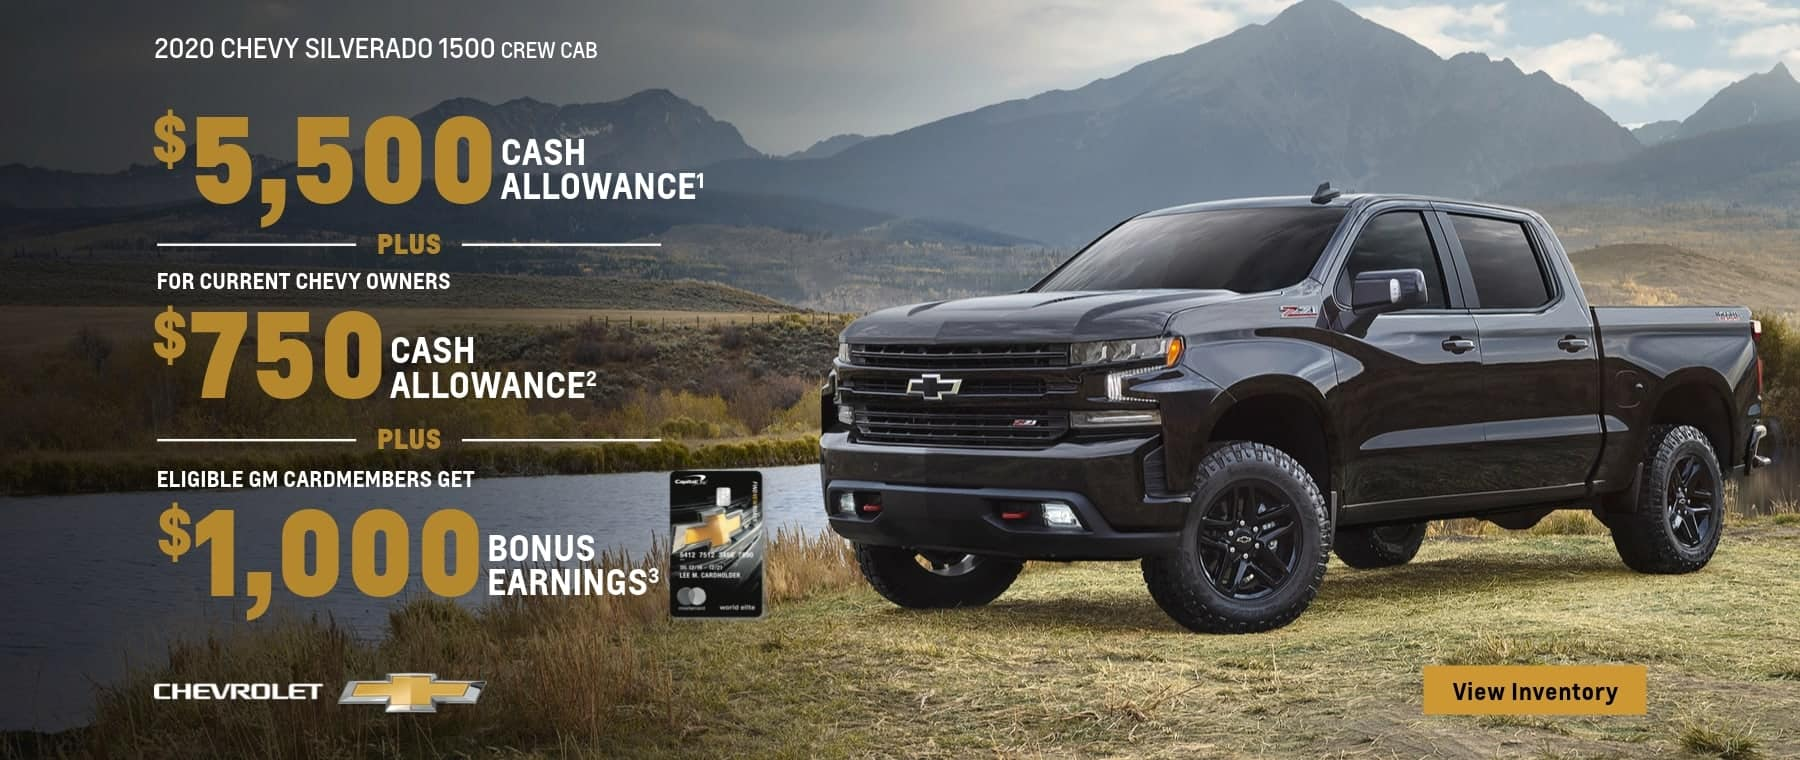 2020 Chevy Silverado 1500 Crew Cab $5,500 Cash Allowance plus for current Chevy owners $750 Cash Allowance plus eligible GM Cardmembers get $1,000 GM card bonus earnings.